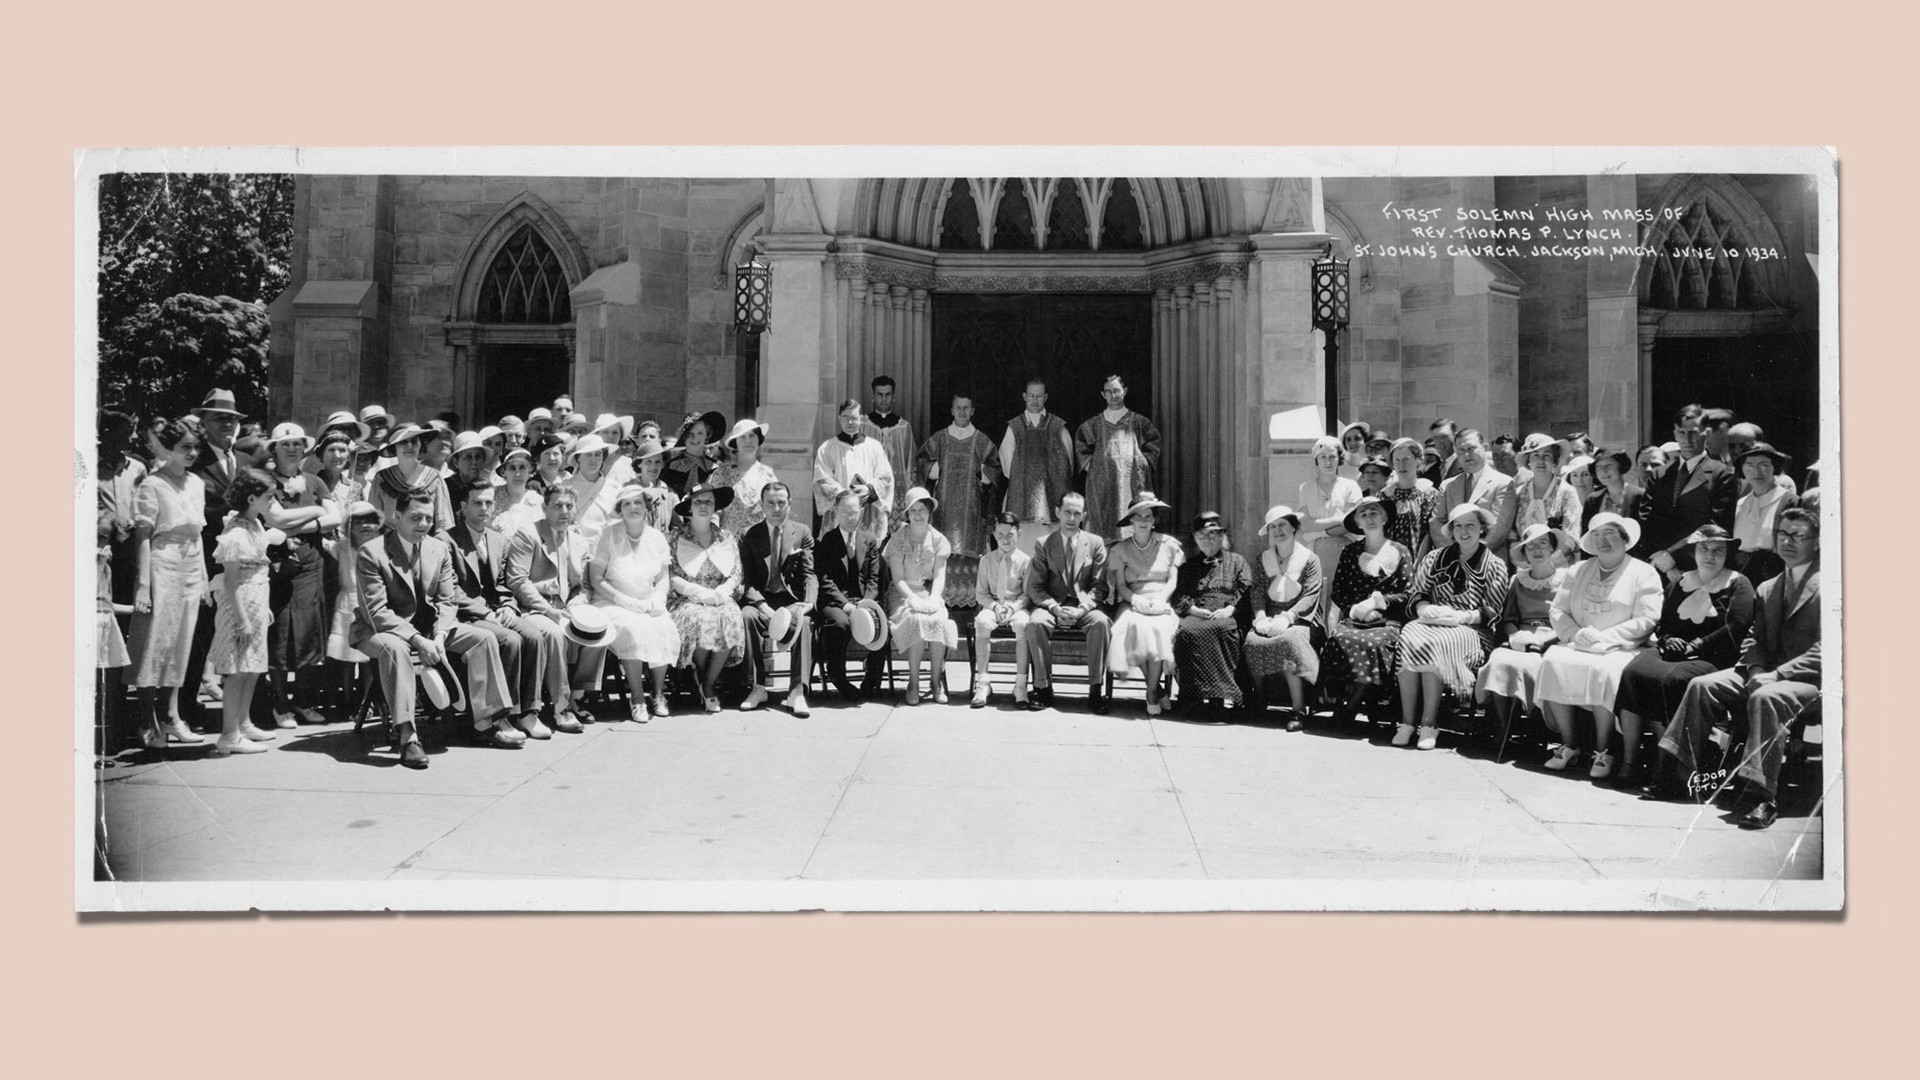 First Solemn High Mass of Rev. Thomas P. Lynch, June 10, 1934